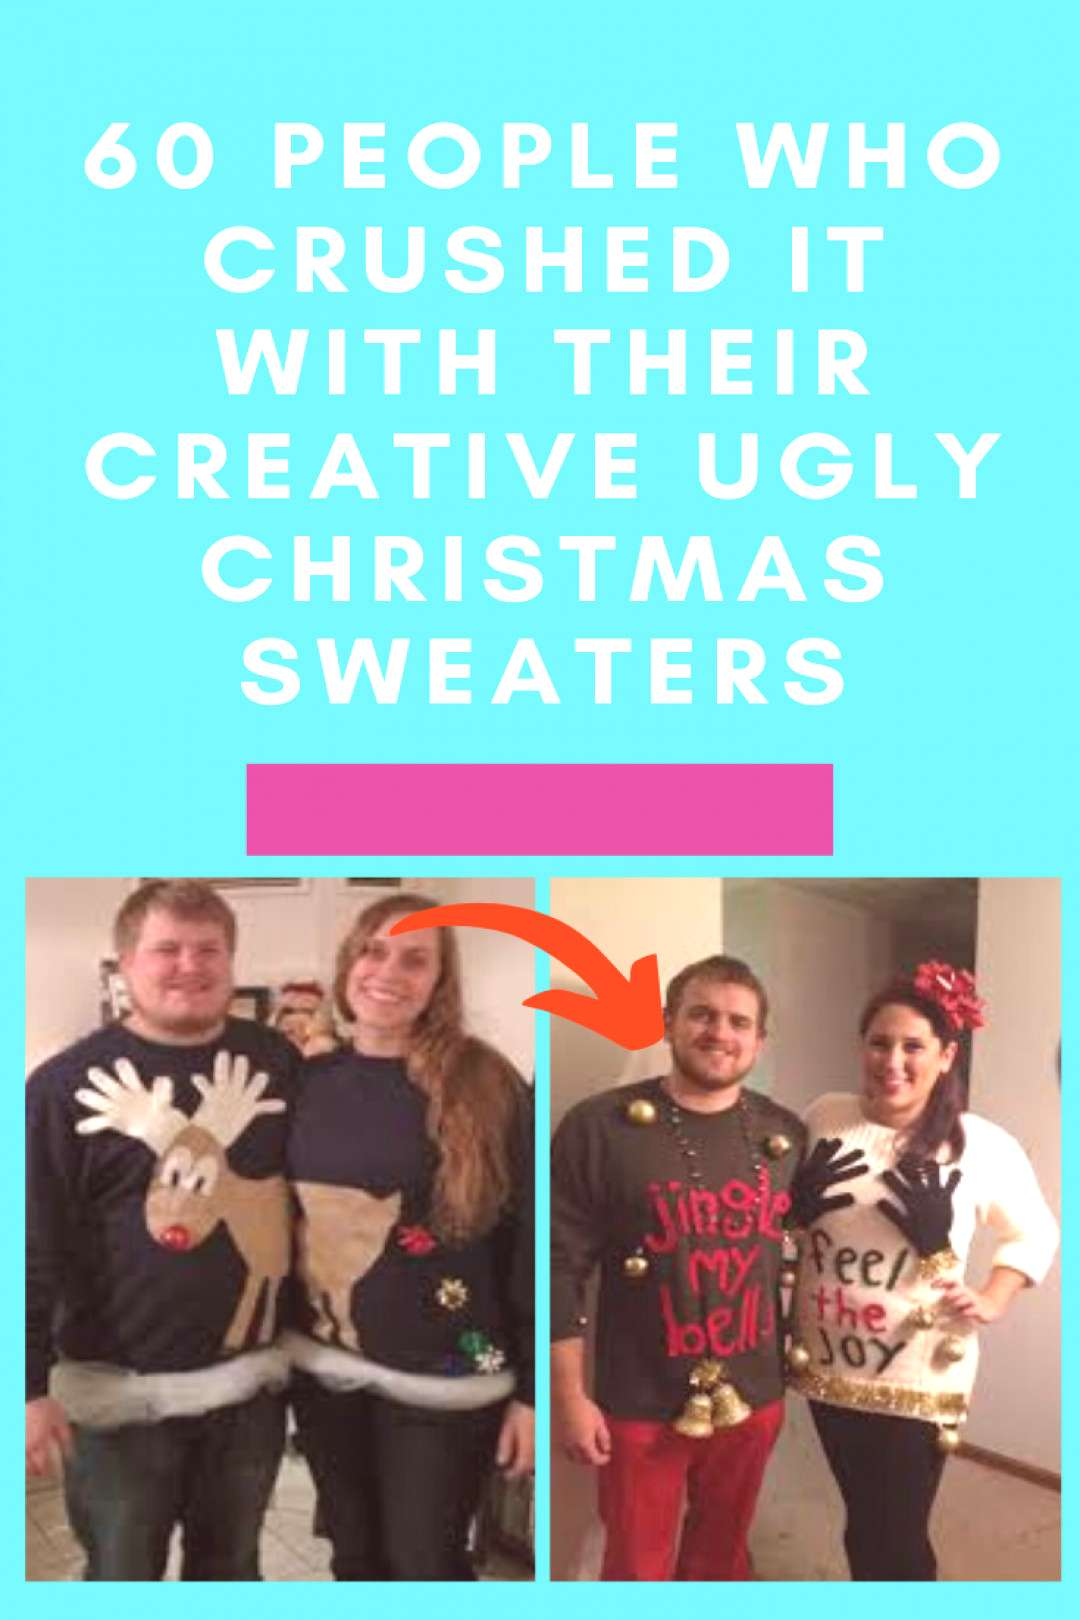 60 people who crushed it with their creative ugly Christmas sweaters For some weird reason, people